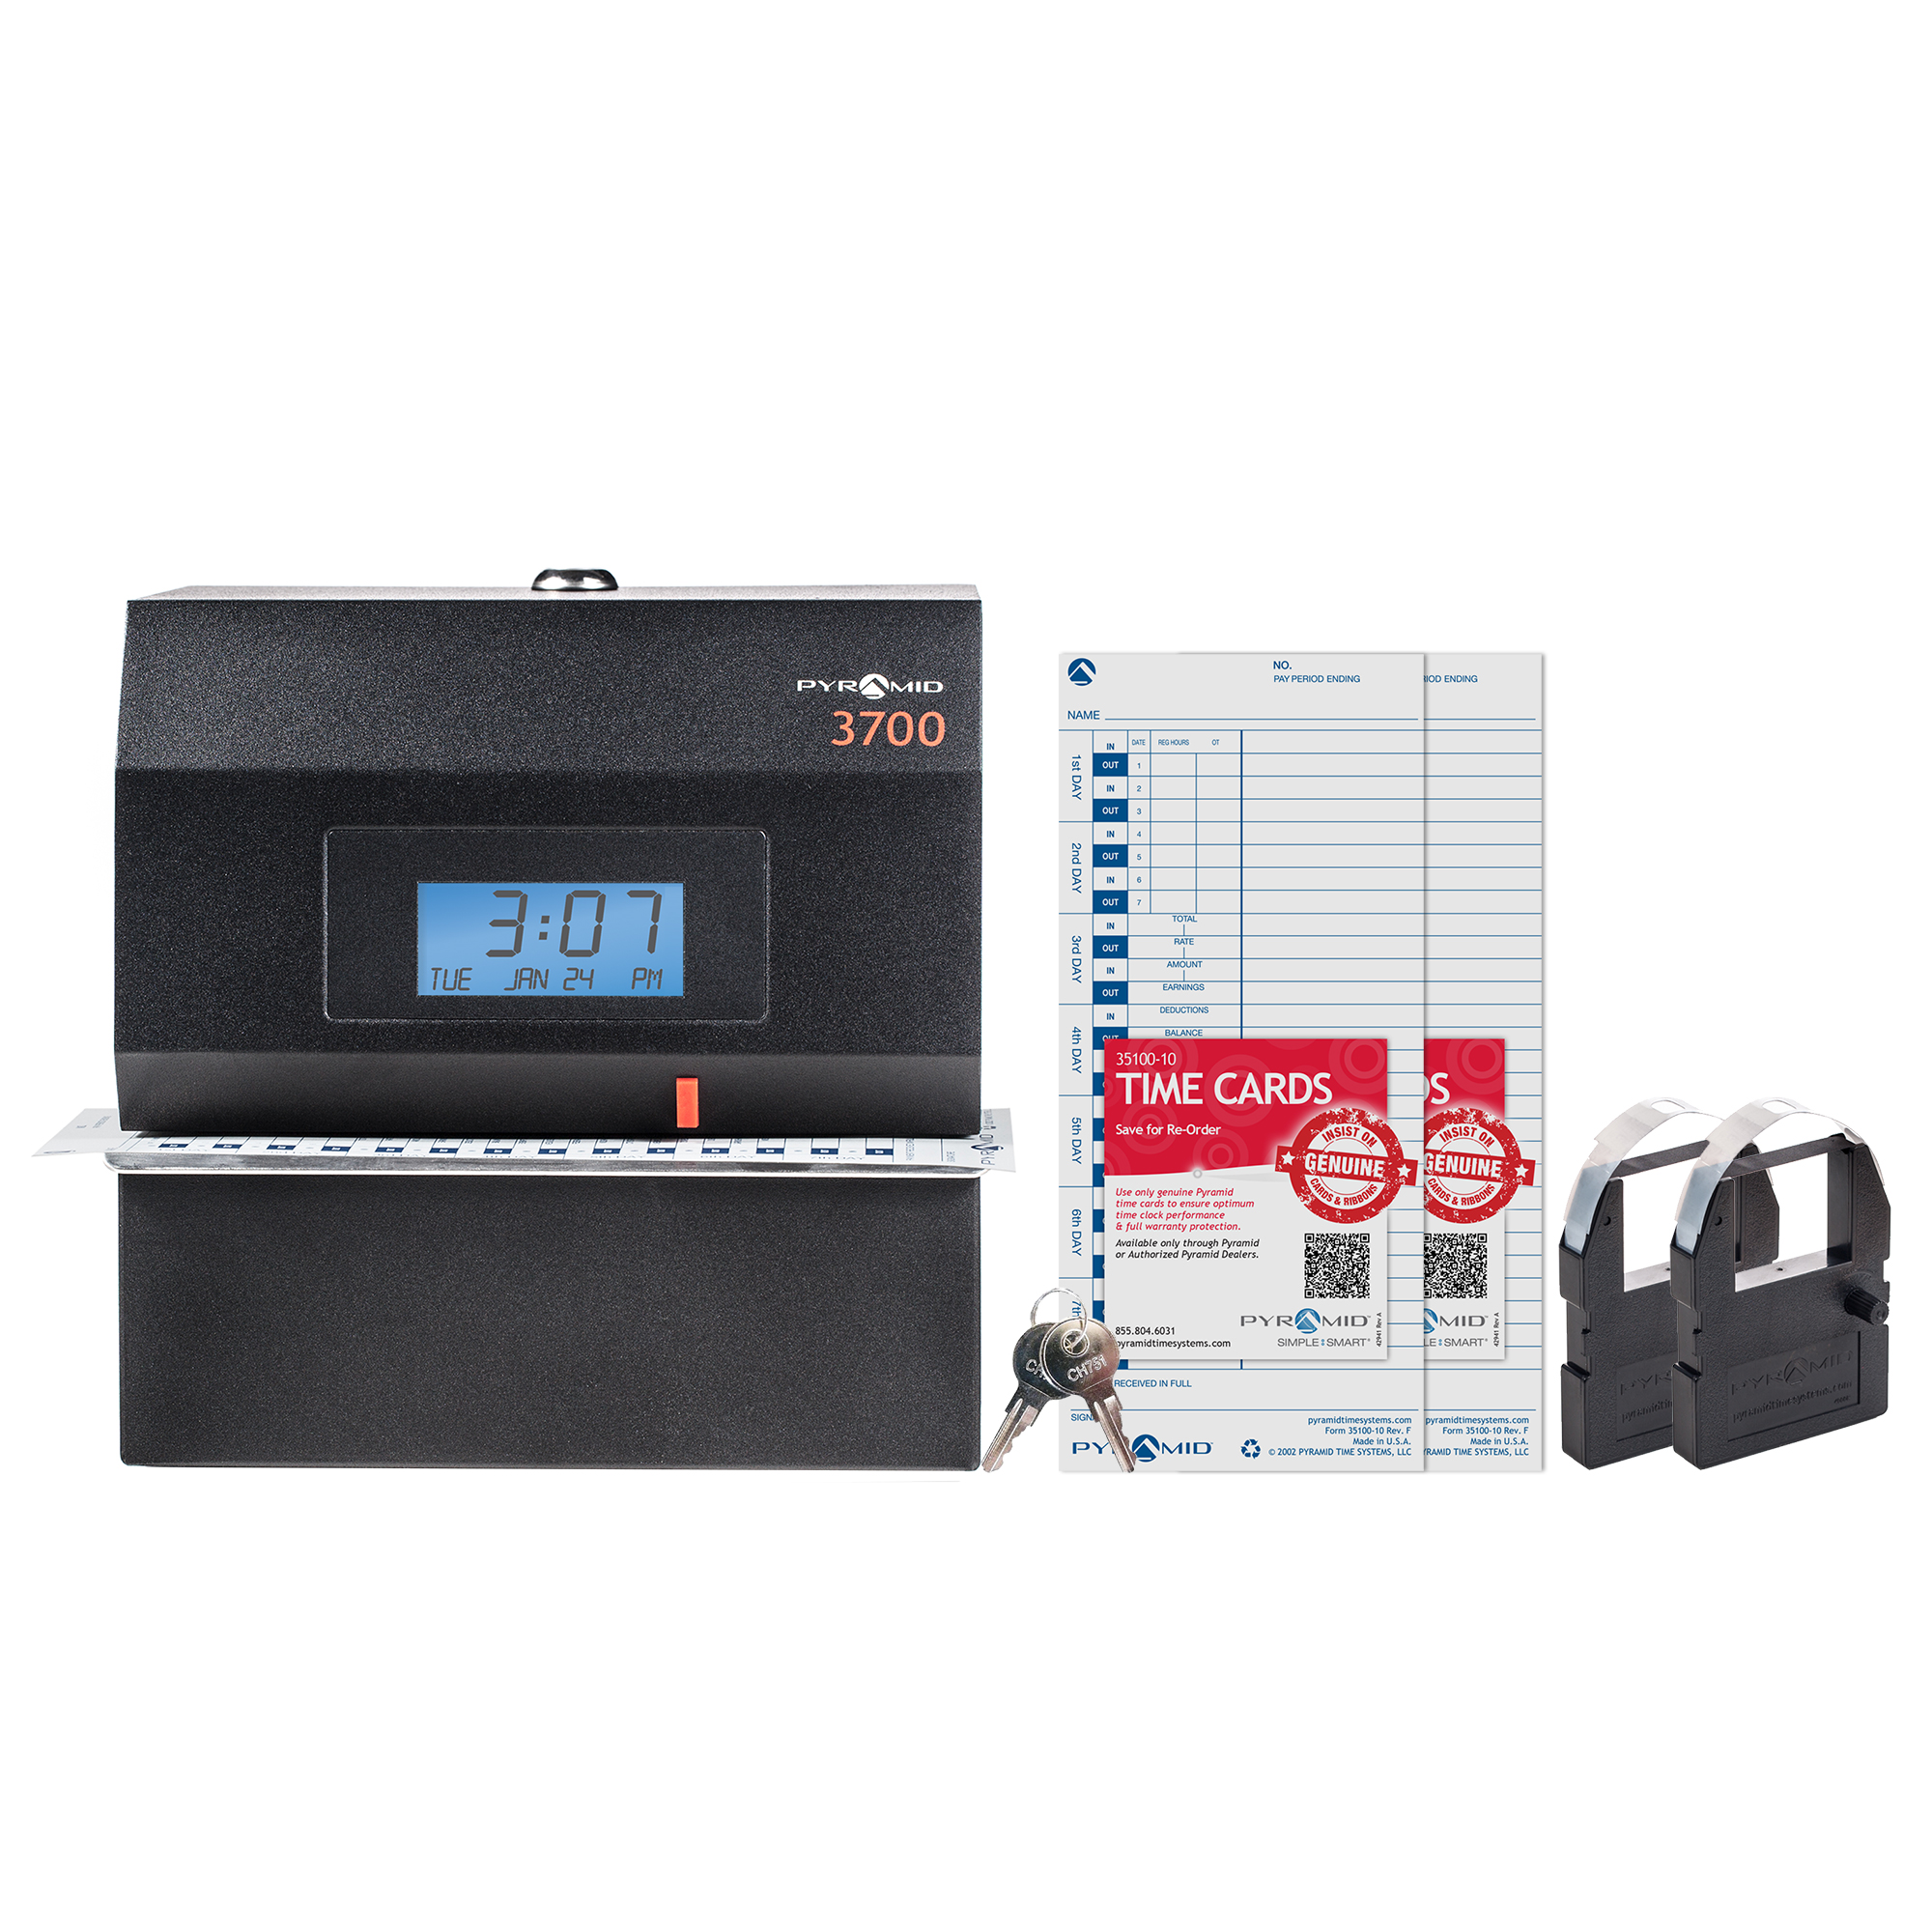 Pyramid 3700 Heavy-Duty Time Clock and Document Stamp Bundle, includes 225 time cards, 2 ribbon cartridges